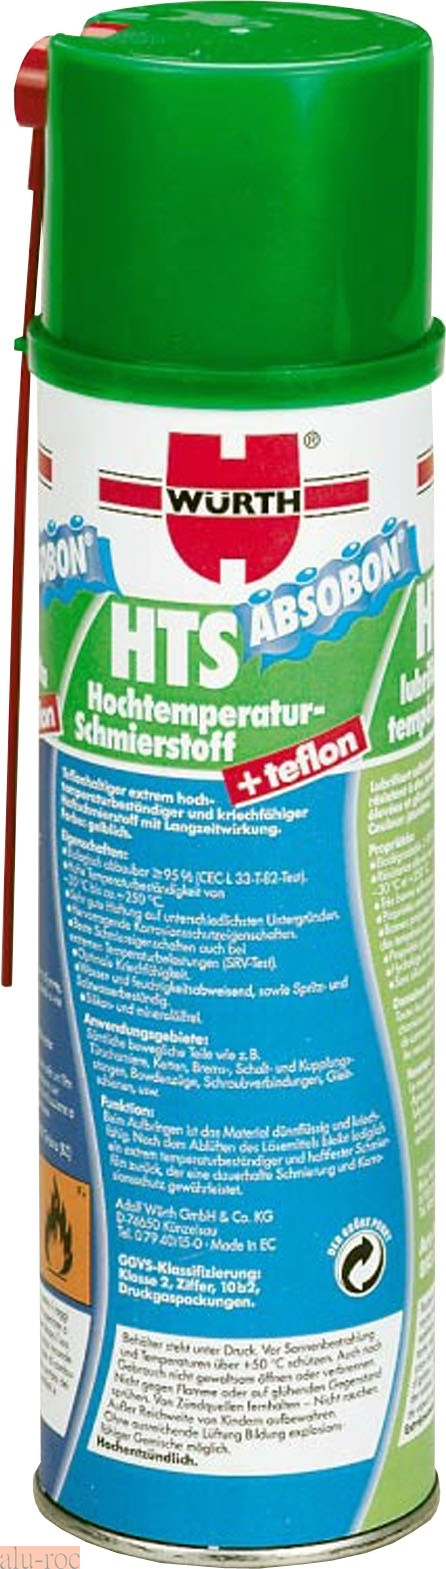 Würth hts absobon PTFE 500 ml